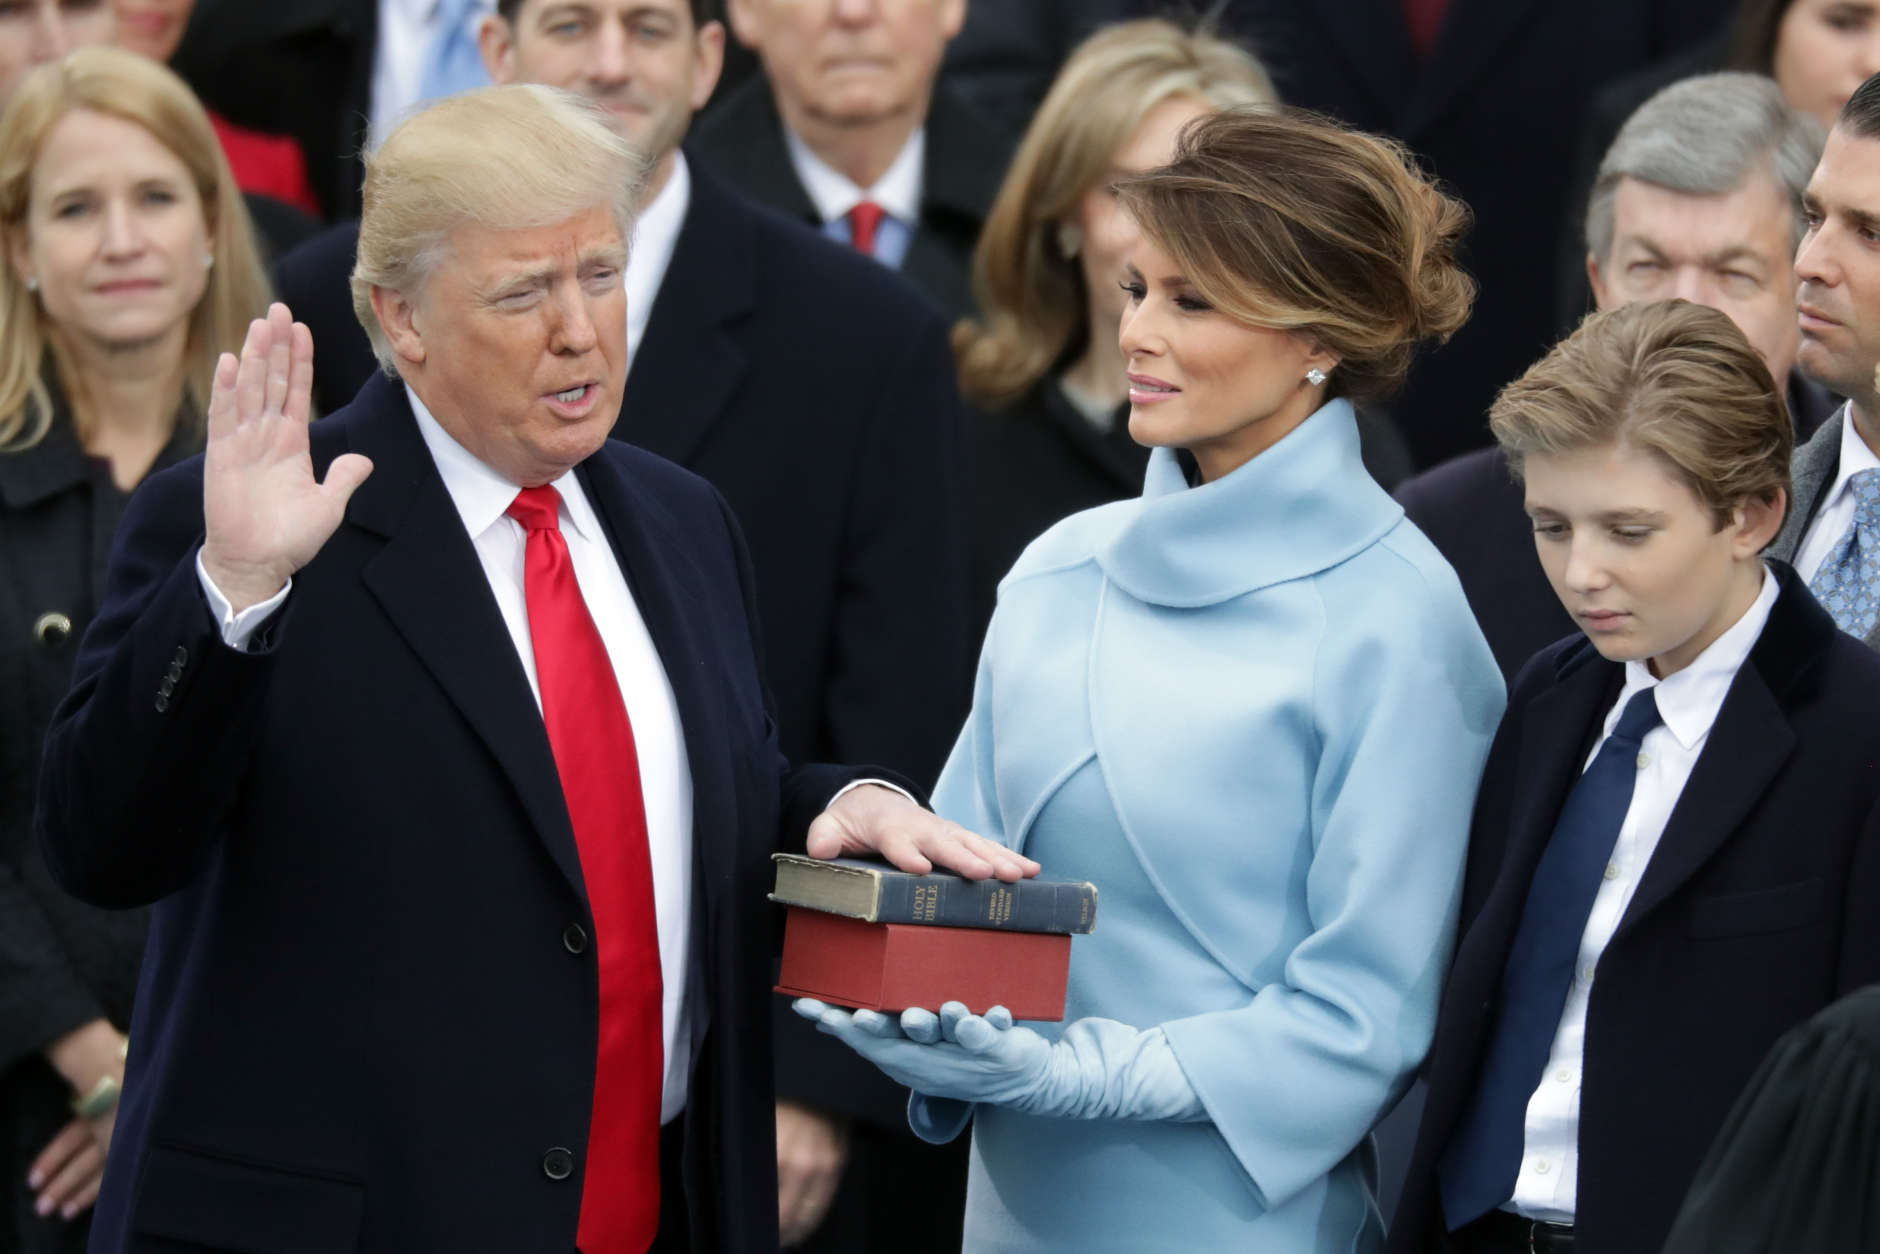 WASHINGTON, DC - JANUARY 20:  (L-R) U.S. President Donald Trump takes the oath of office as his wife Melania Trump holds the bible and his son Barron Trump looks on, on the West Front of the U.S. Capitol on January 20, 2017 in Washington, DC. In today's inauguration ceremony Donald J. Trump becomes the 45th president of the United States.  (Photo by Chip Somodevilla/Getty Images)